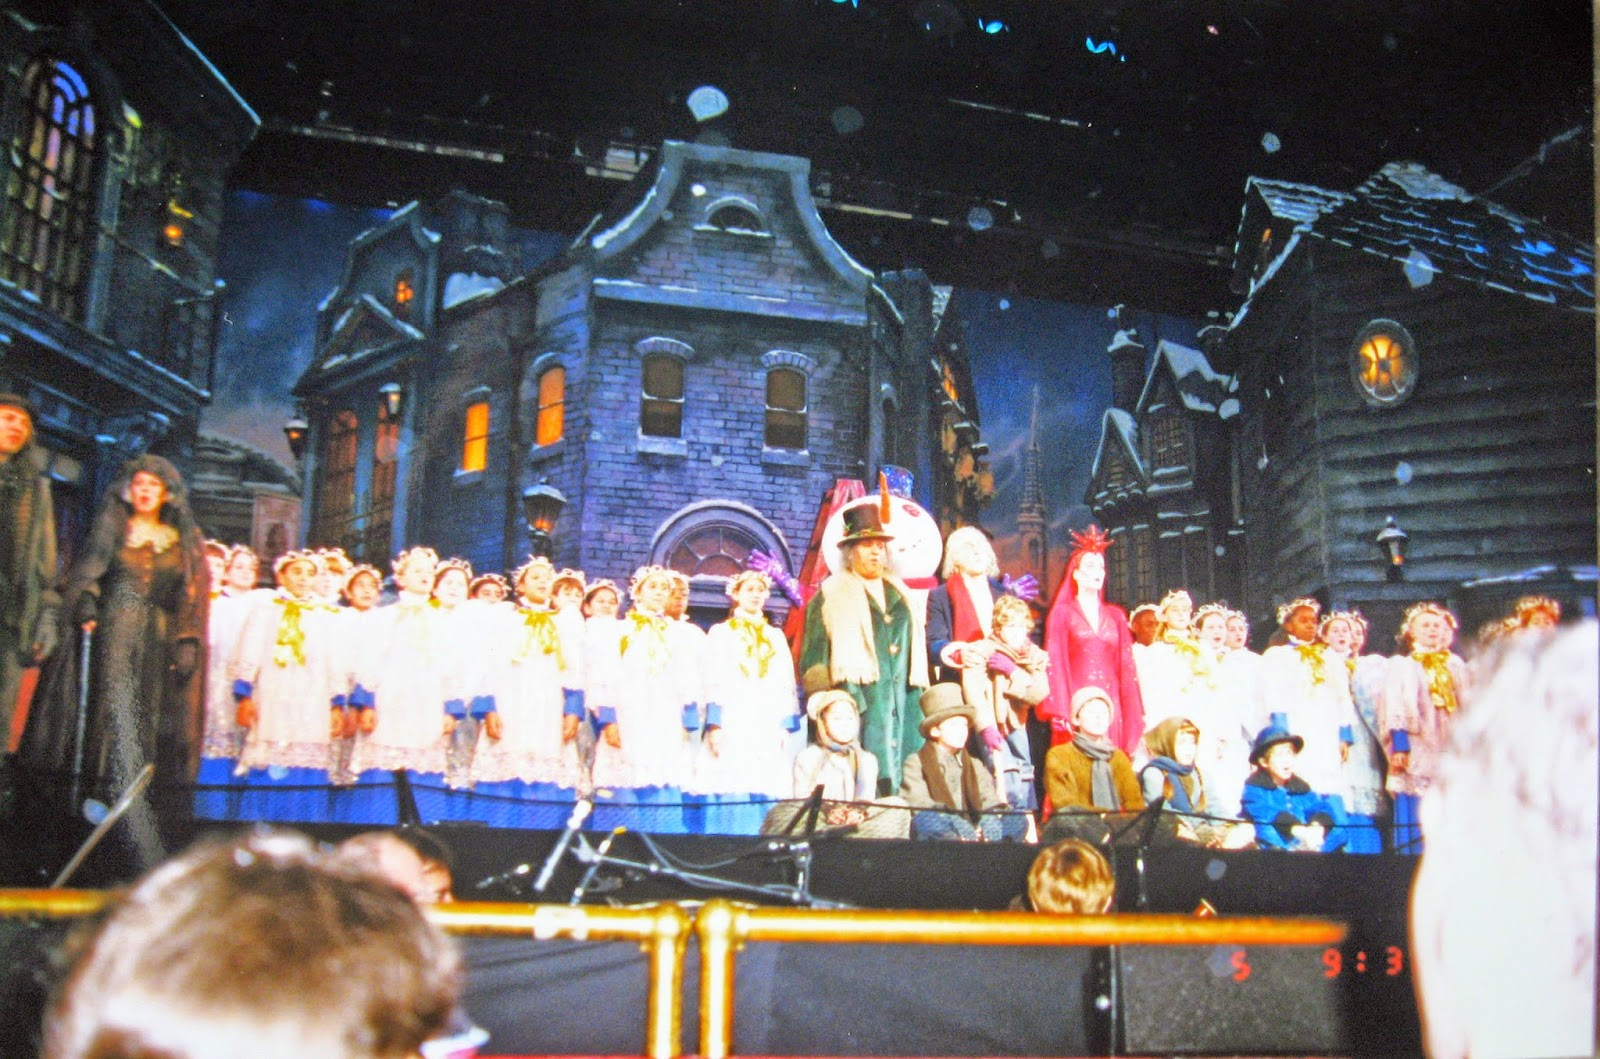 Tommy Mondello's photo's of Roger Daltrey as Scrooge in A Christmas carol Dec 5, 1998 at MSG